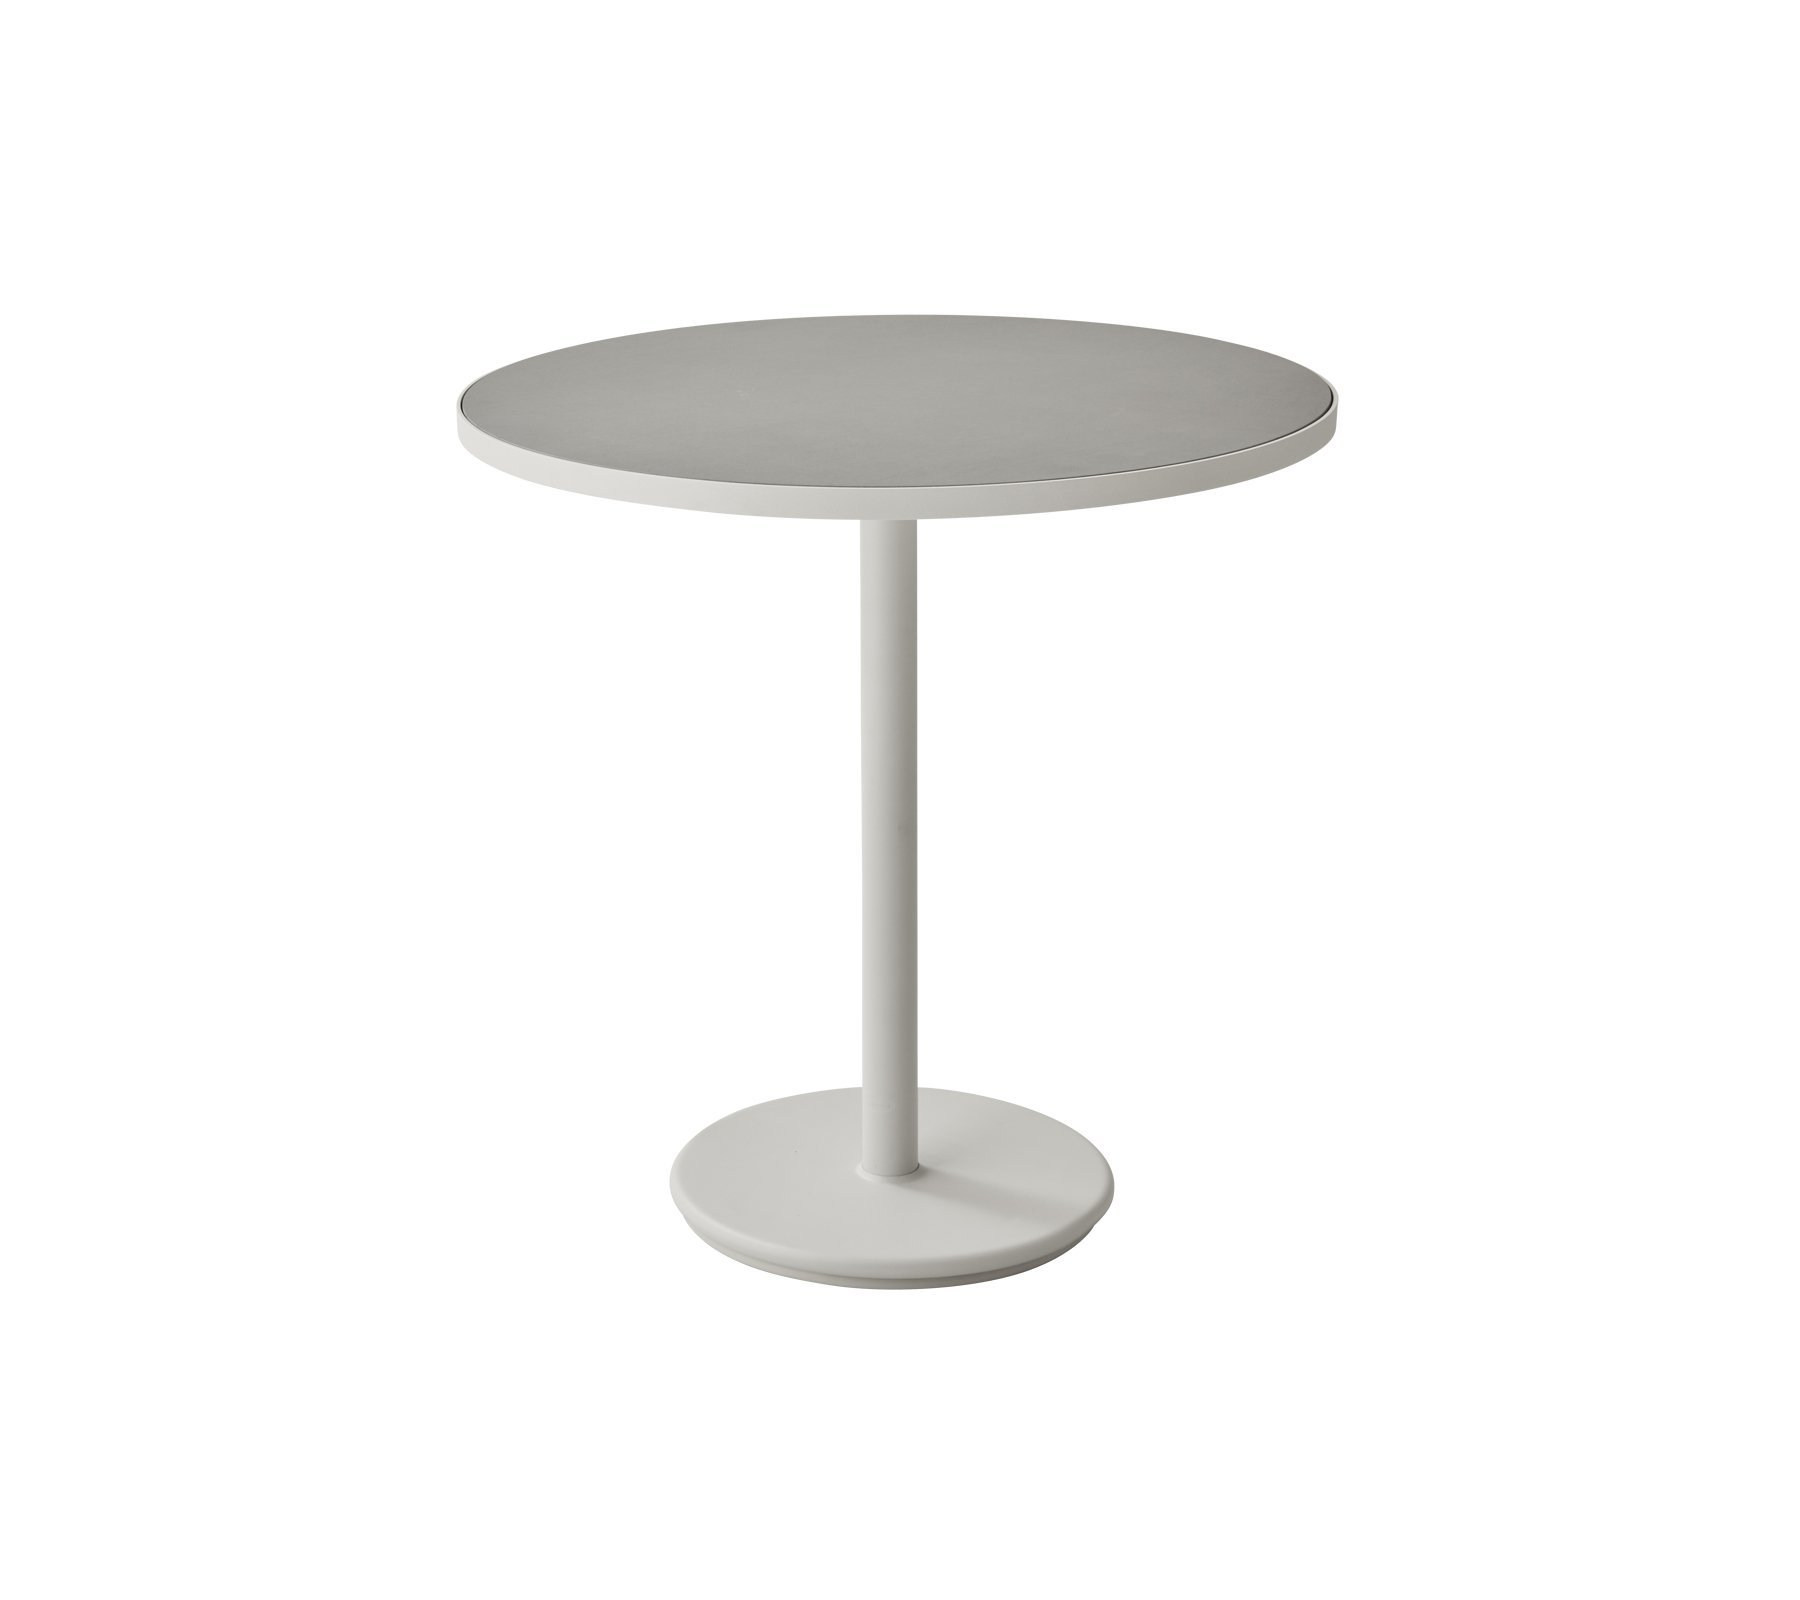 Go Cafe Table bar from Cane-line, designed by Cane-line Design Team